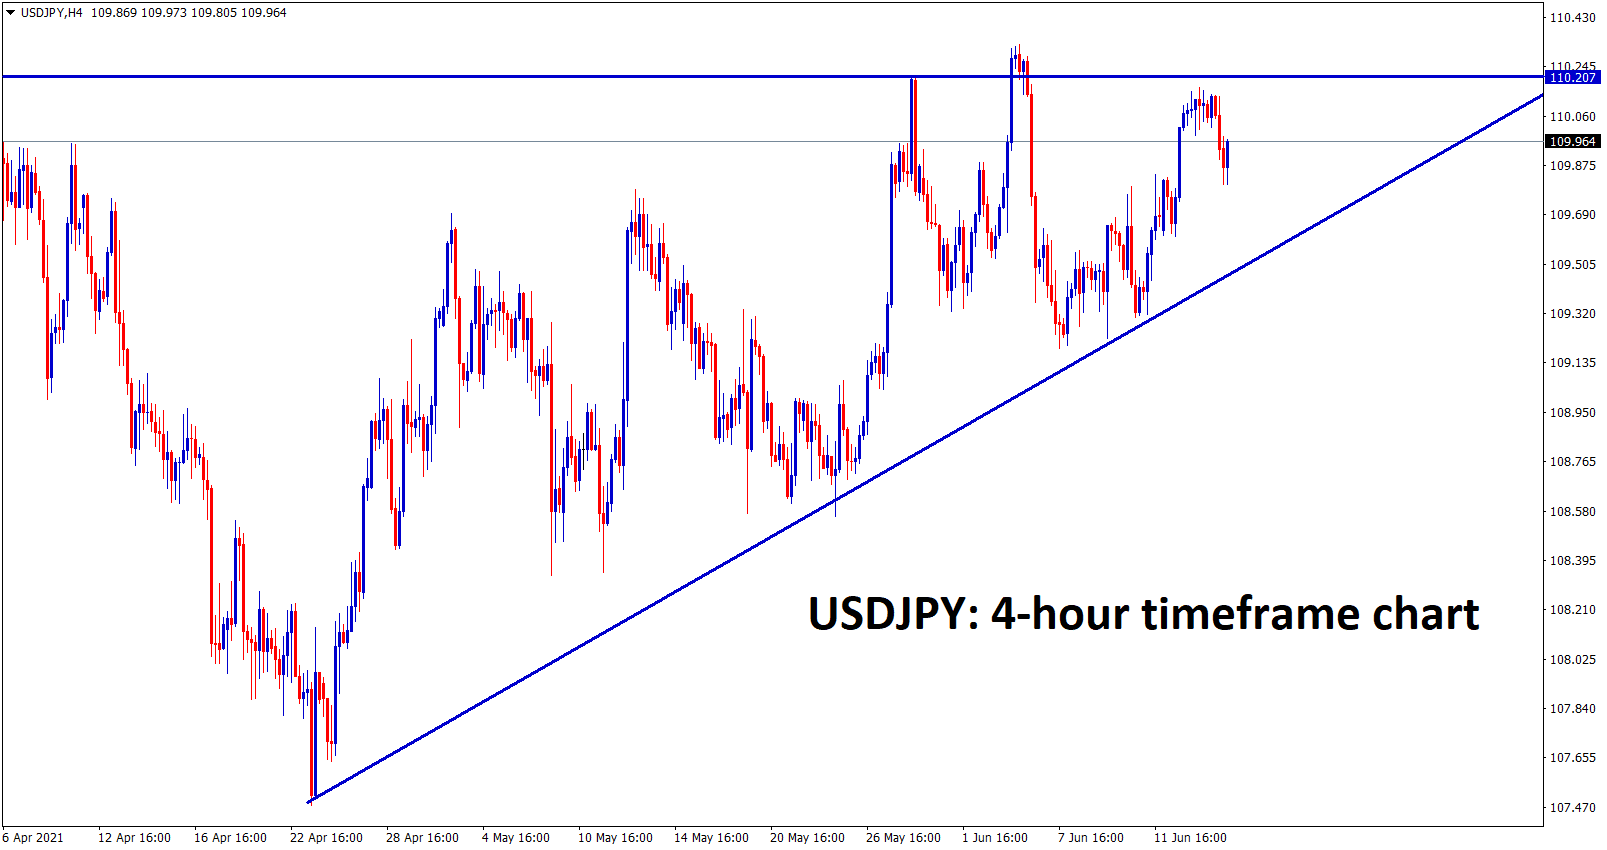 USDJPY moving in an Ascending Triangle pattern